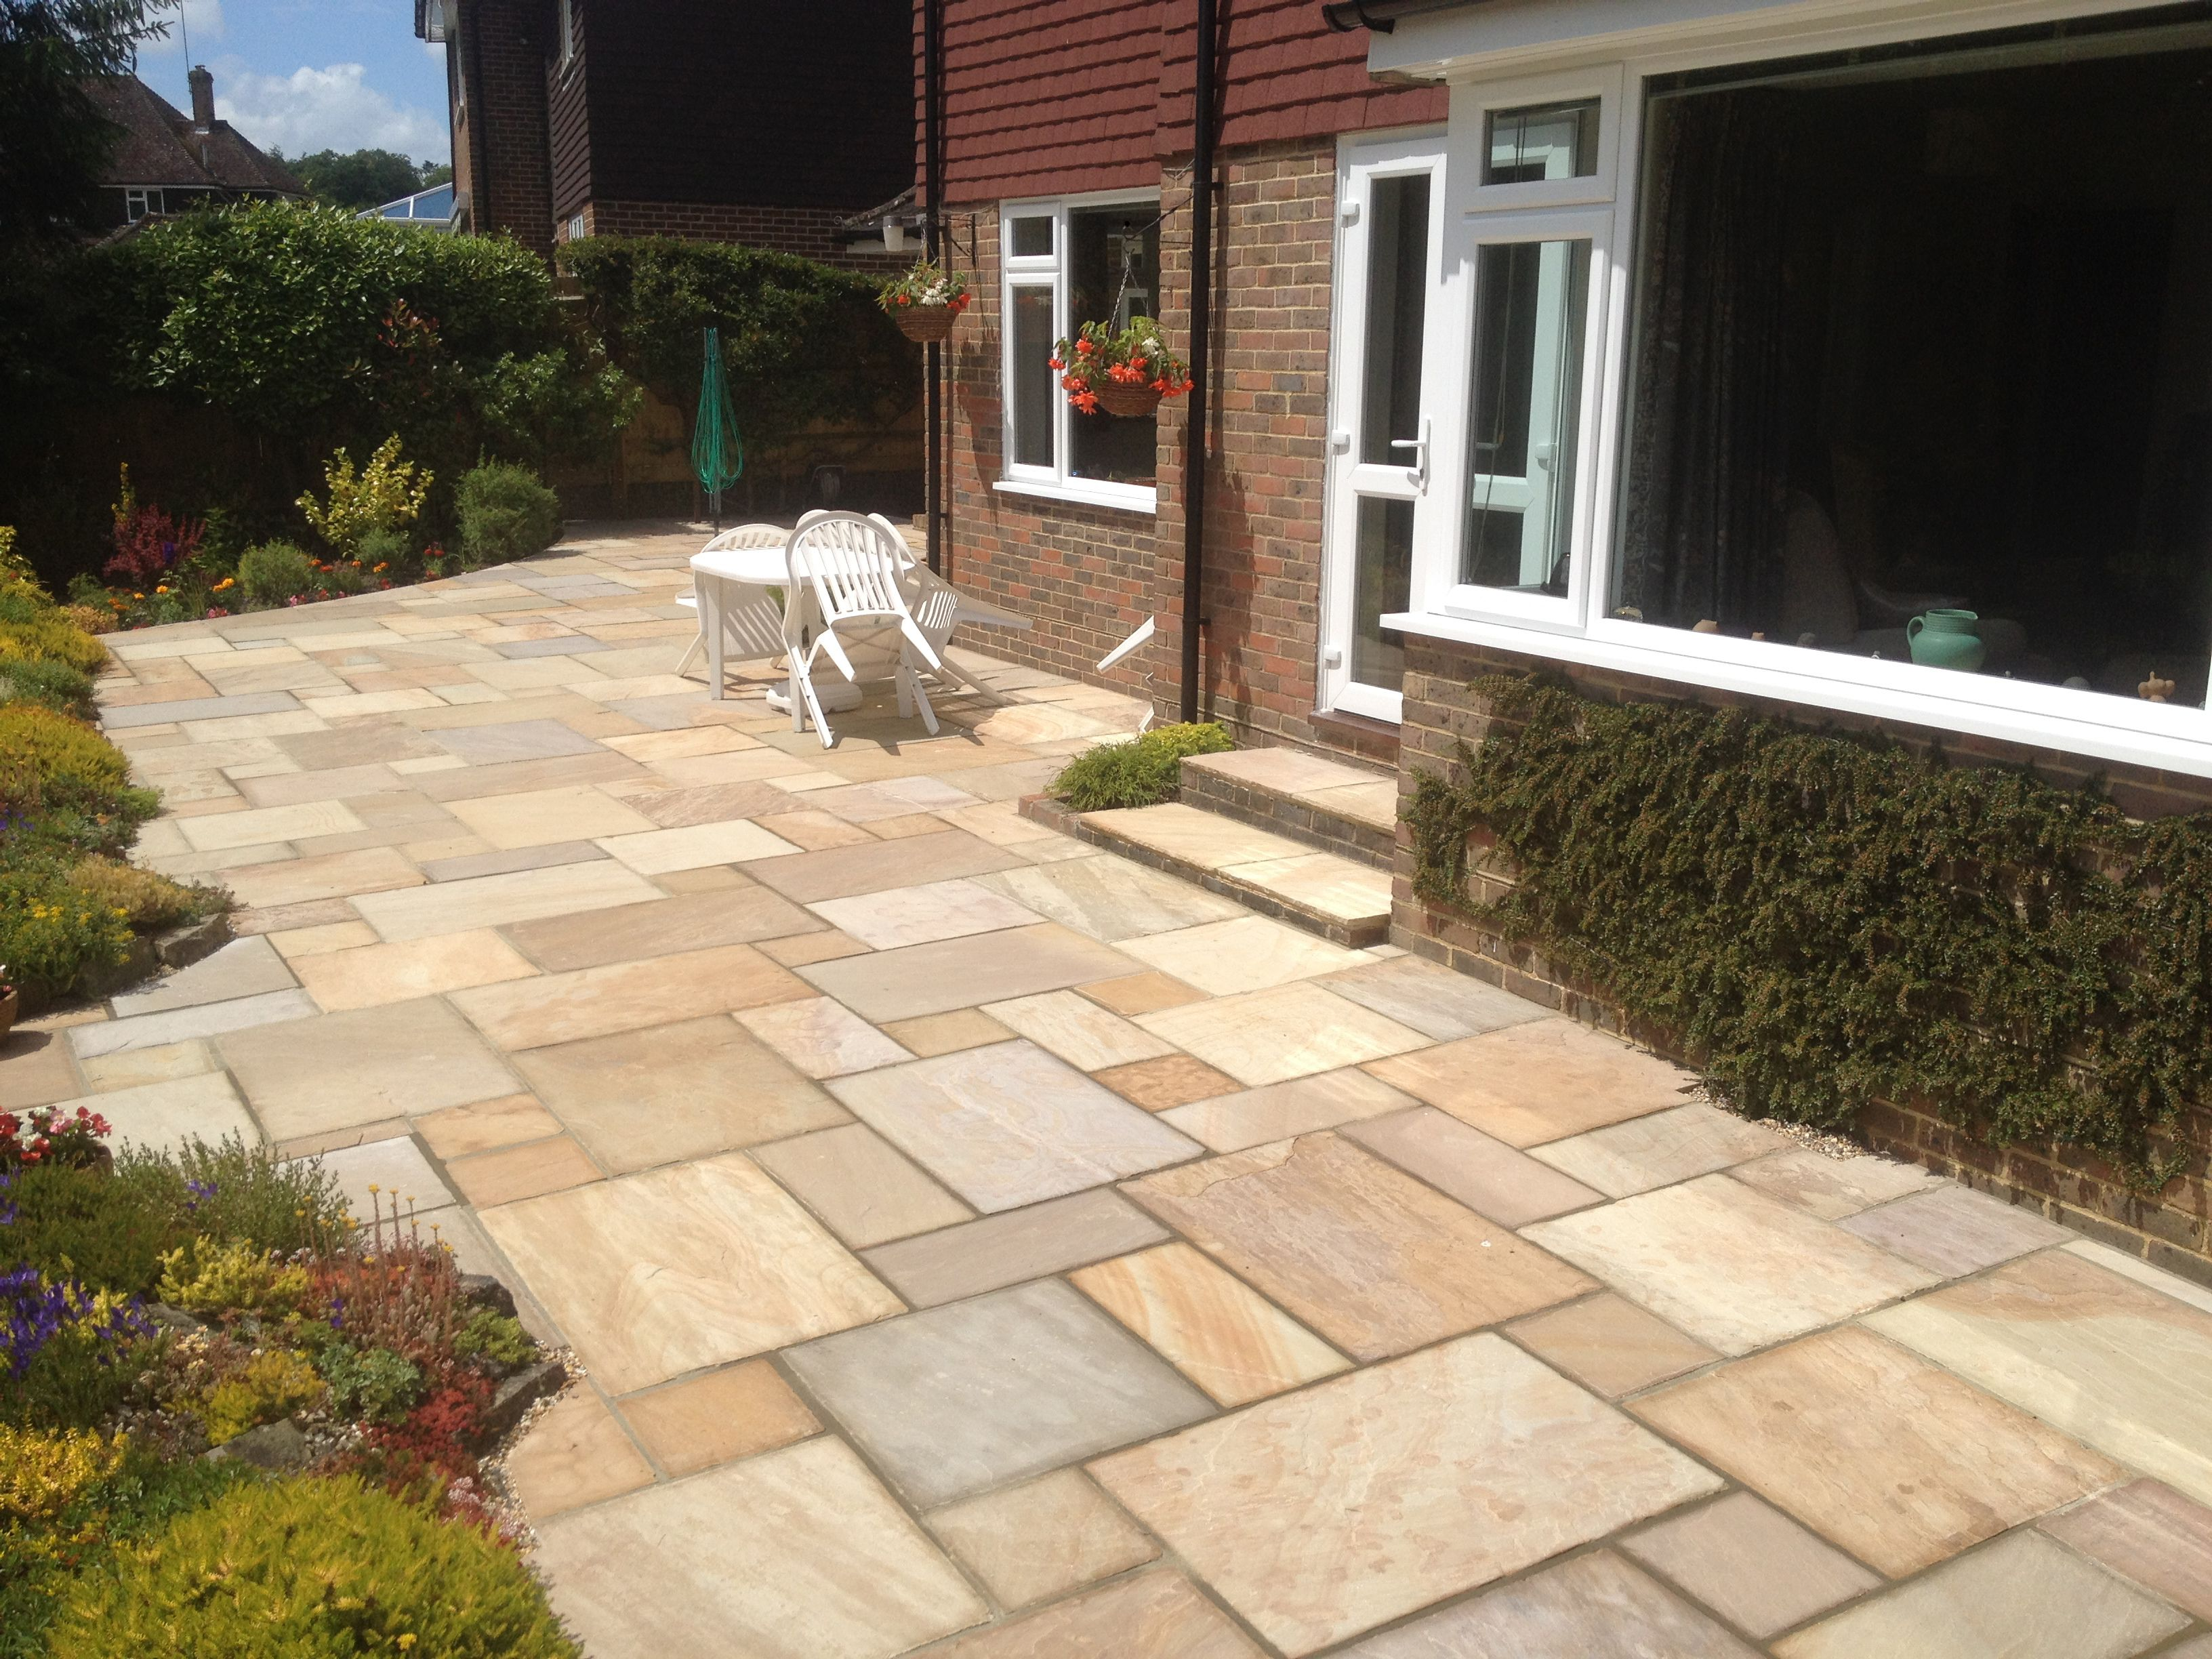 pavestone buff sandstone patio paving